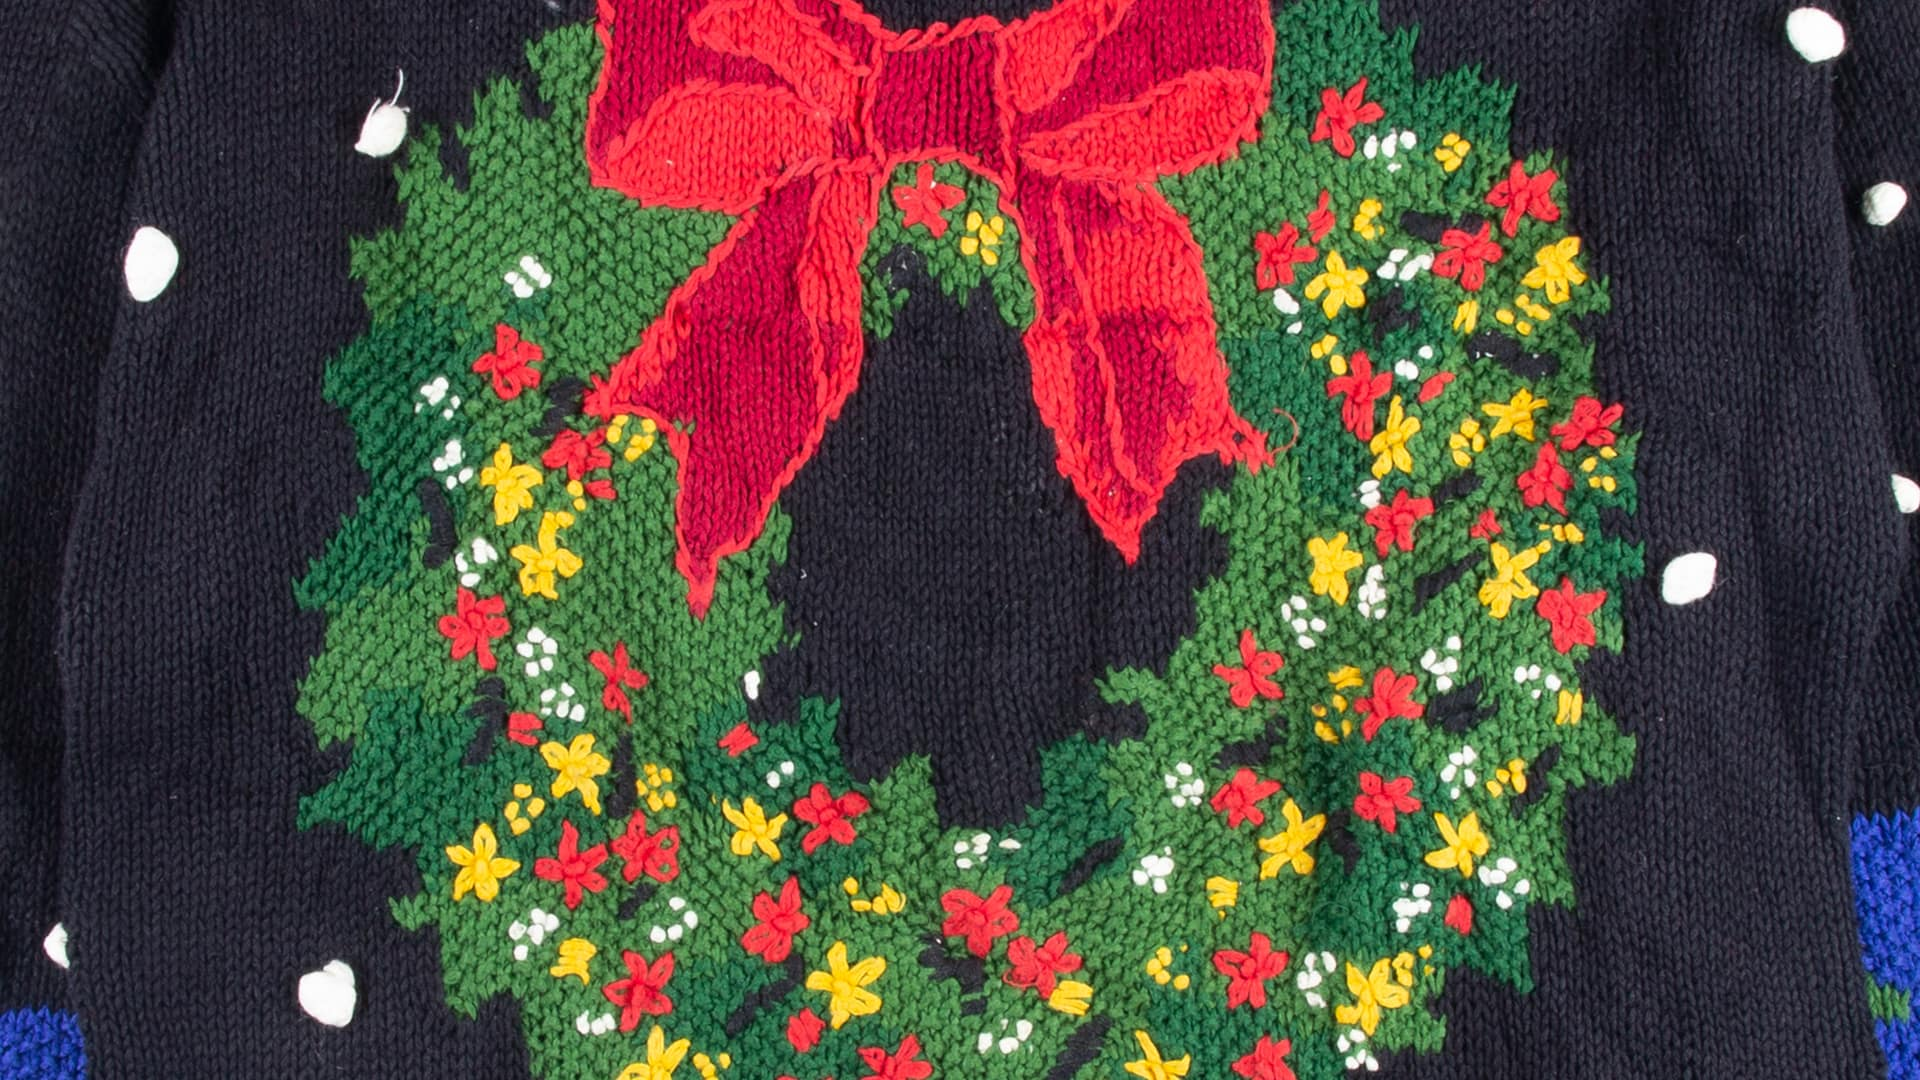 Ugly Christmas sweater featuring a wreath with a large red bow